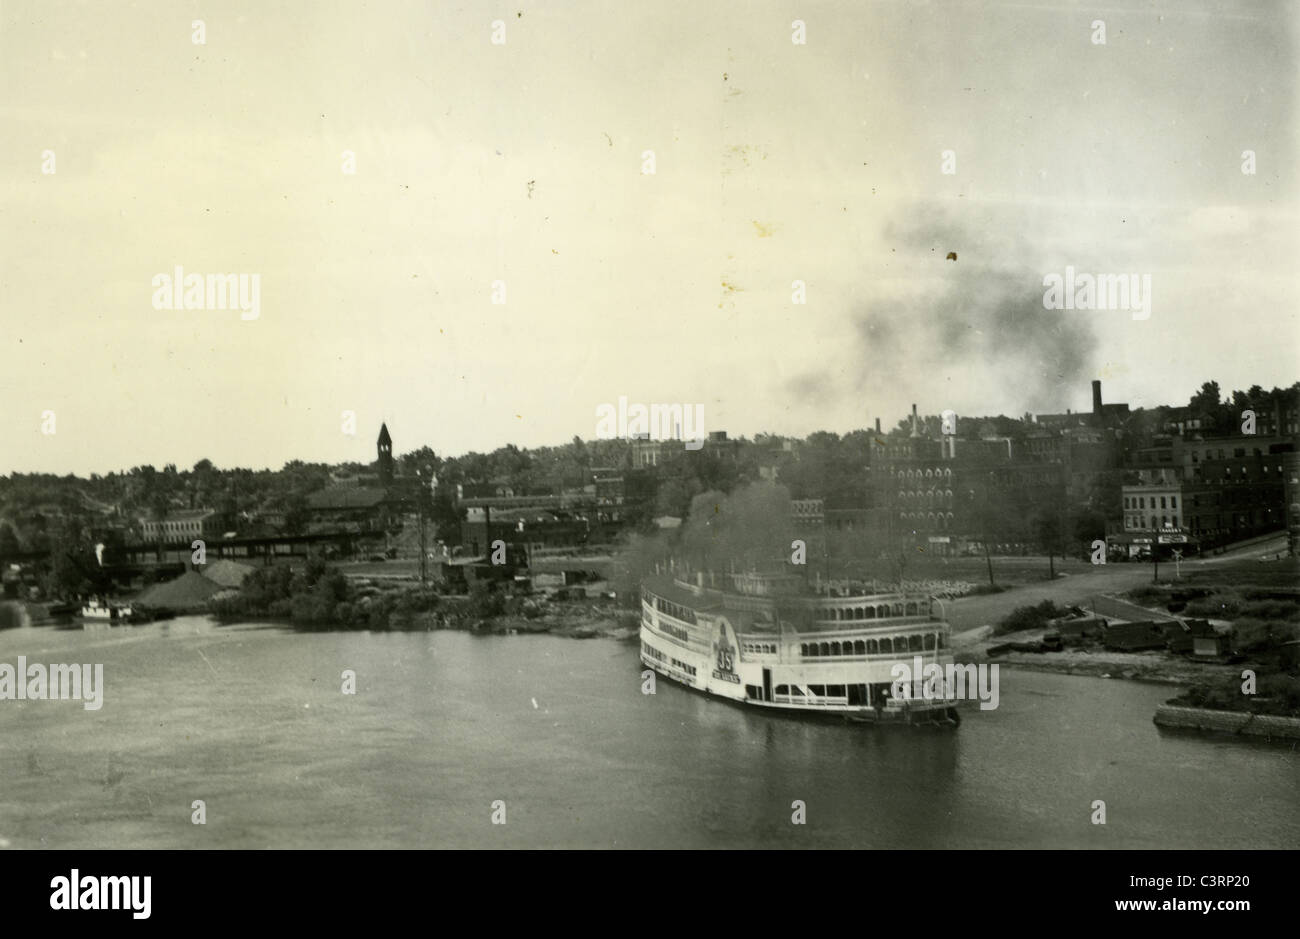 river boat docked in Quincy Illinois during the great depression 1939 1930s Americana travel - Stock Image